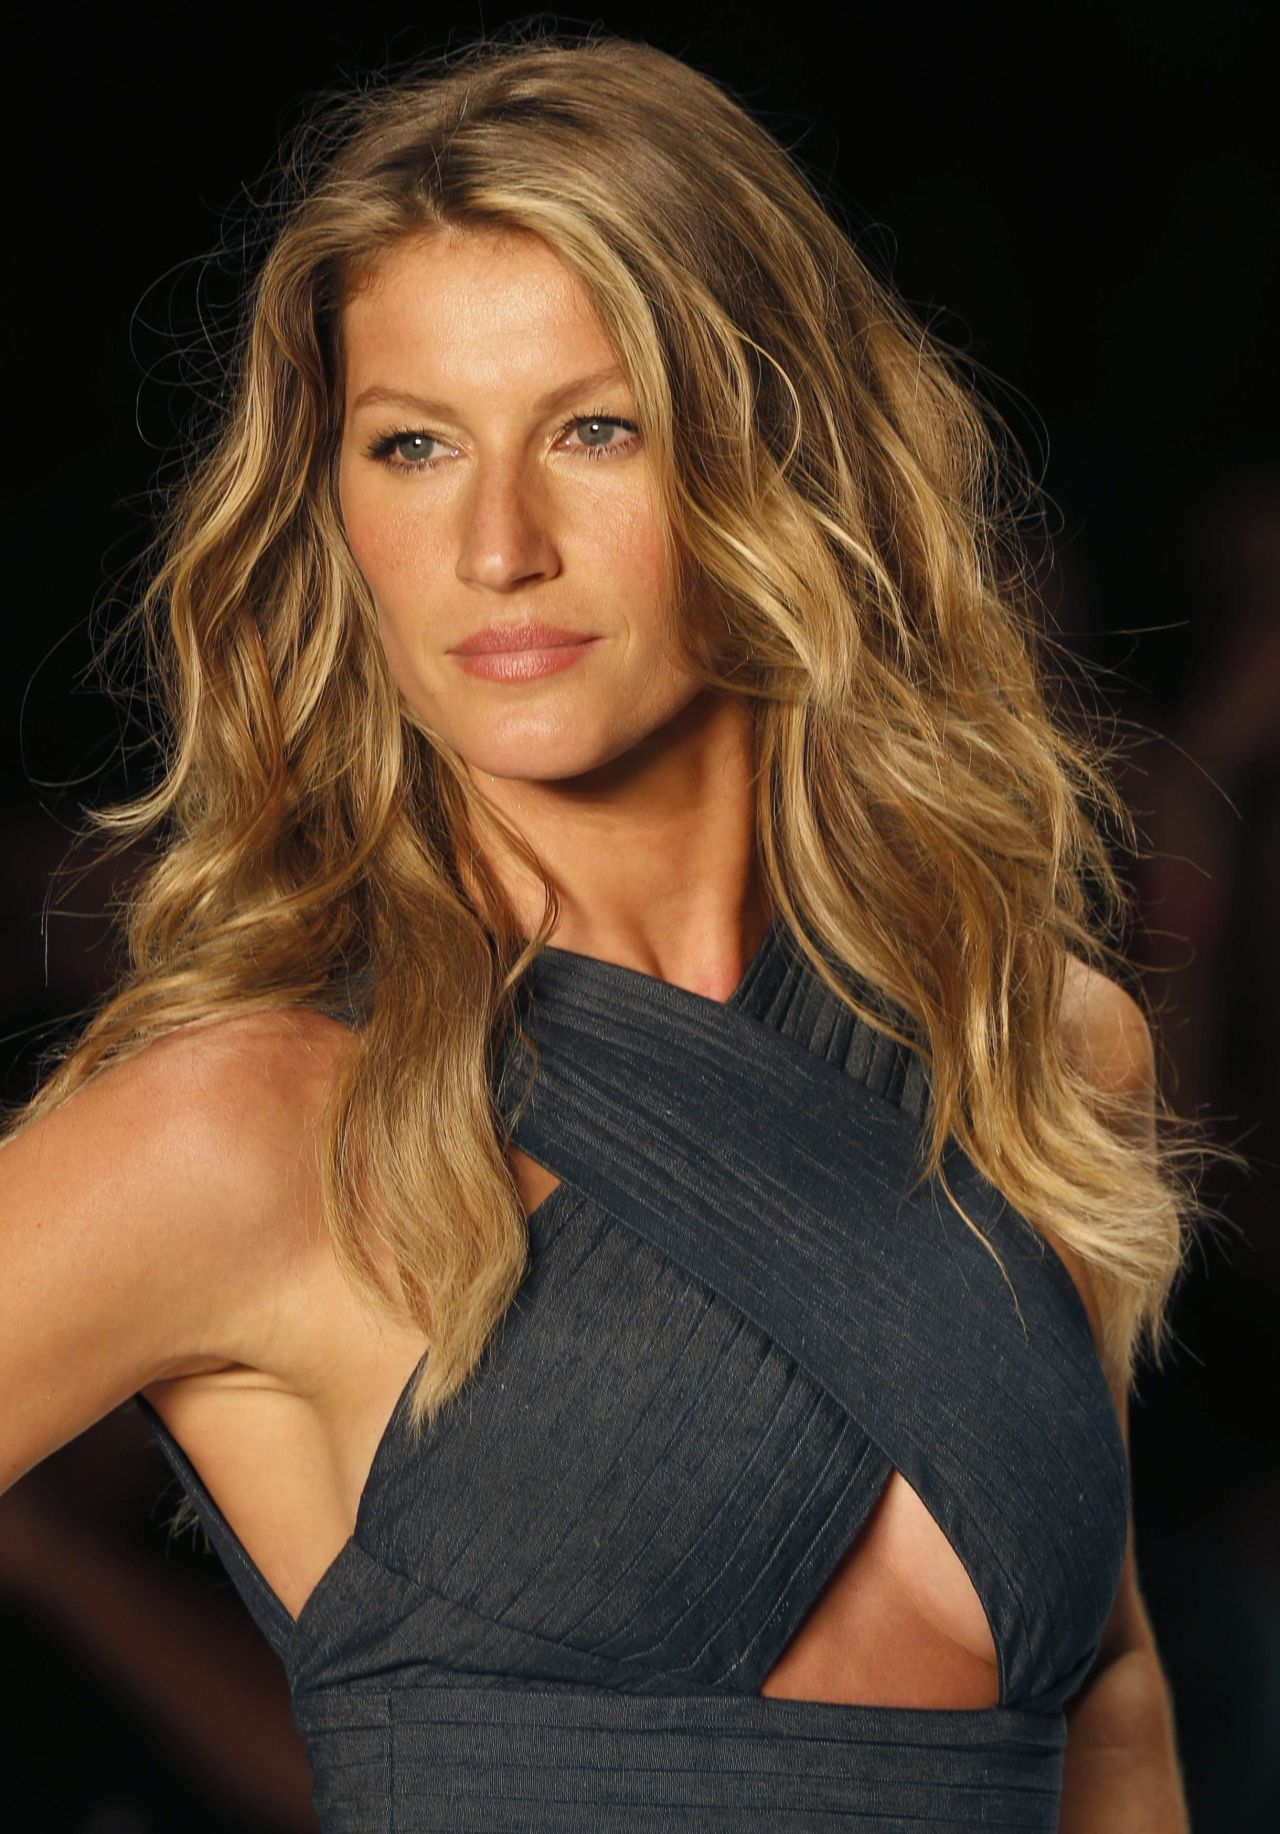 Gisele Bundchen - Colcci Summer 2015 Fashion Show - April 2014 Gisele Bundchen